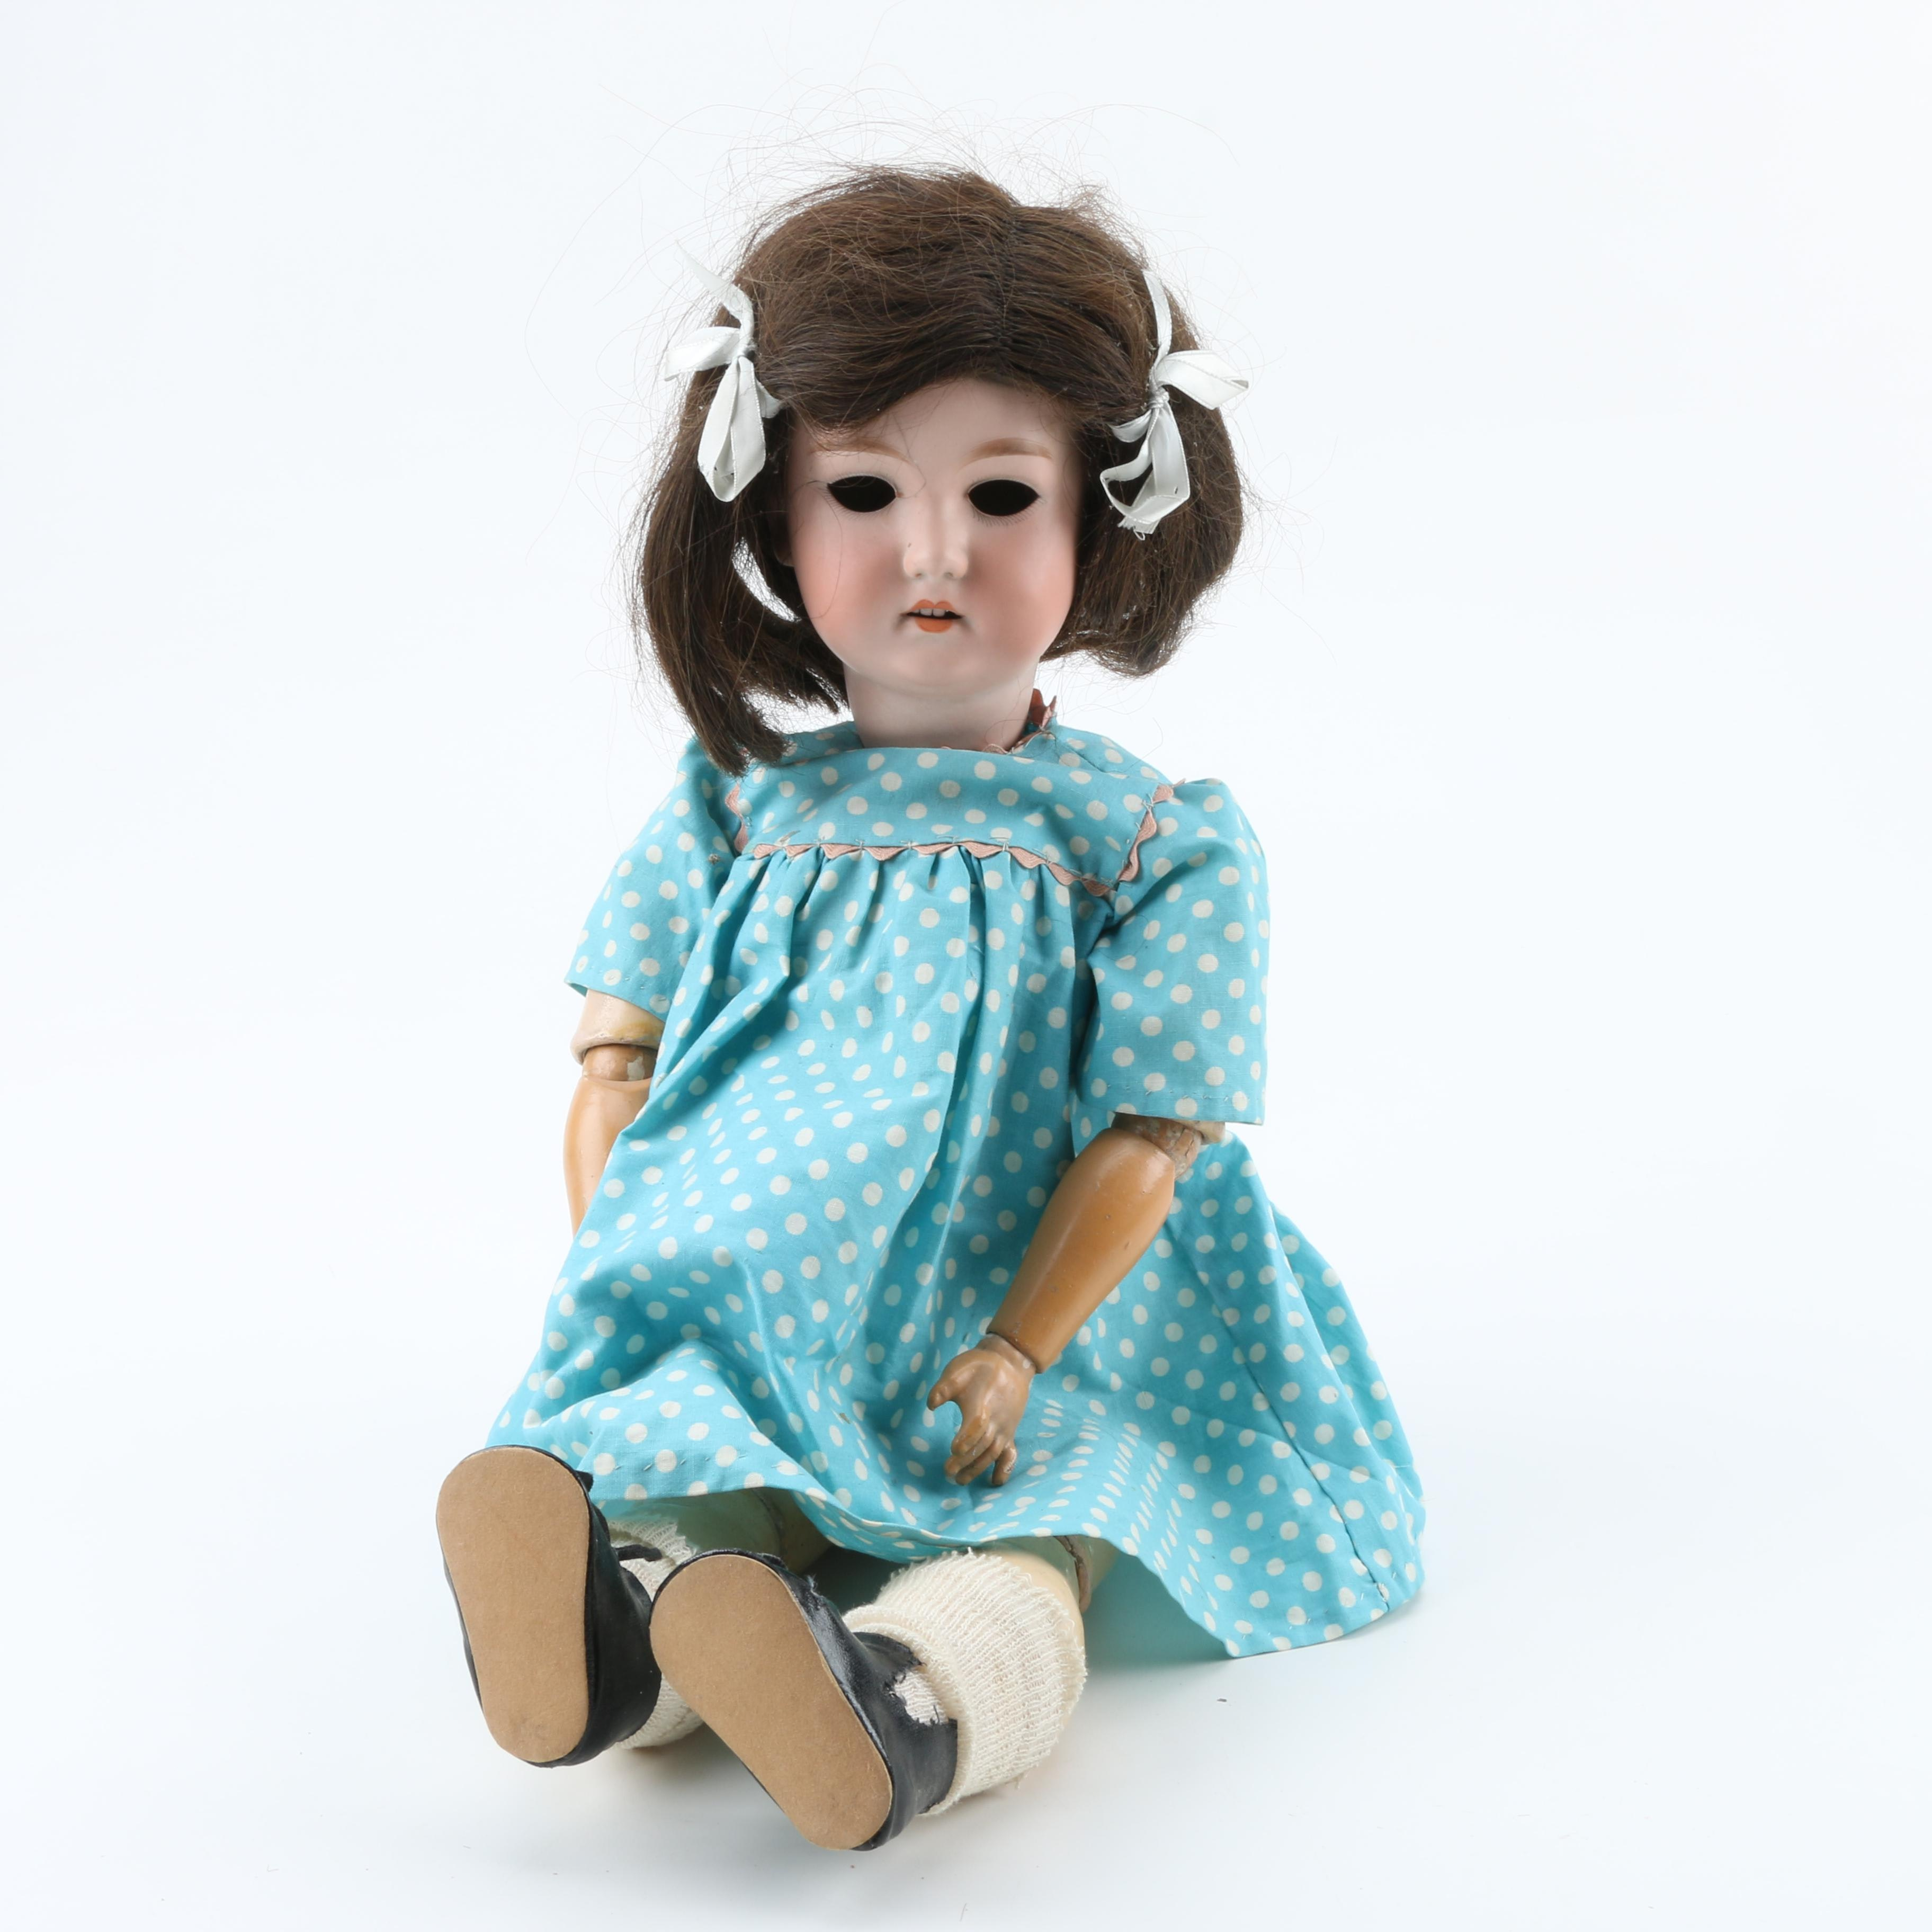 Antique German Bisque Socket Head and Composition Doll